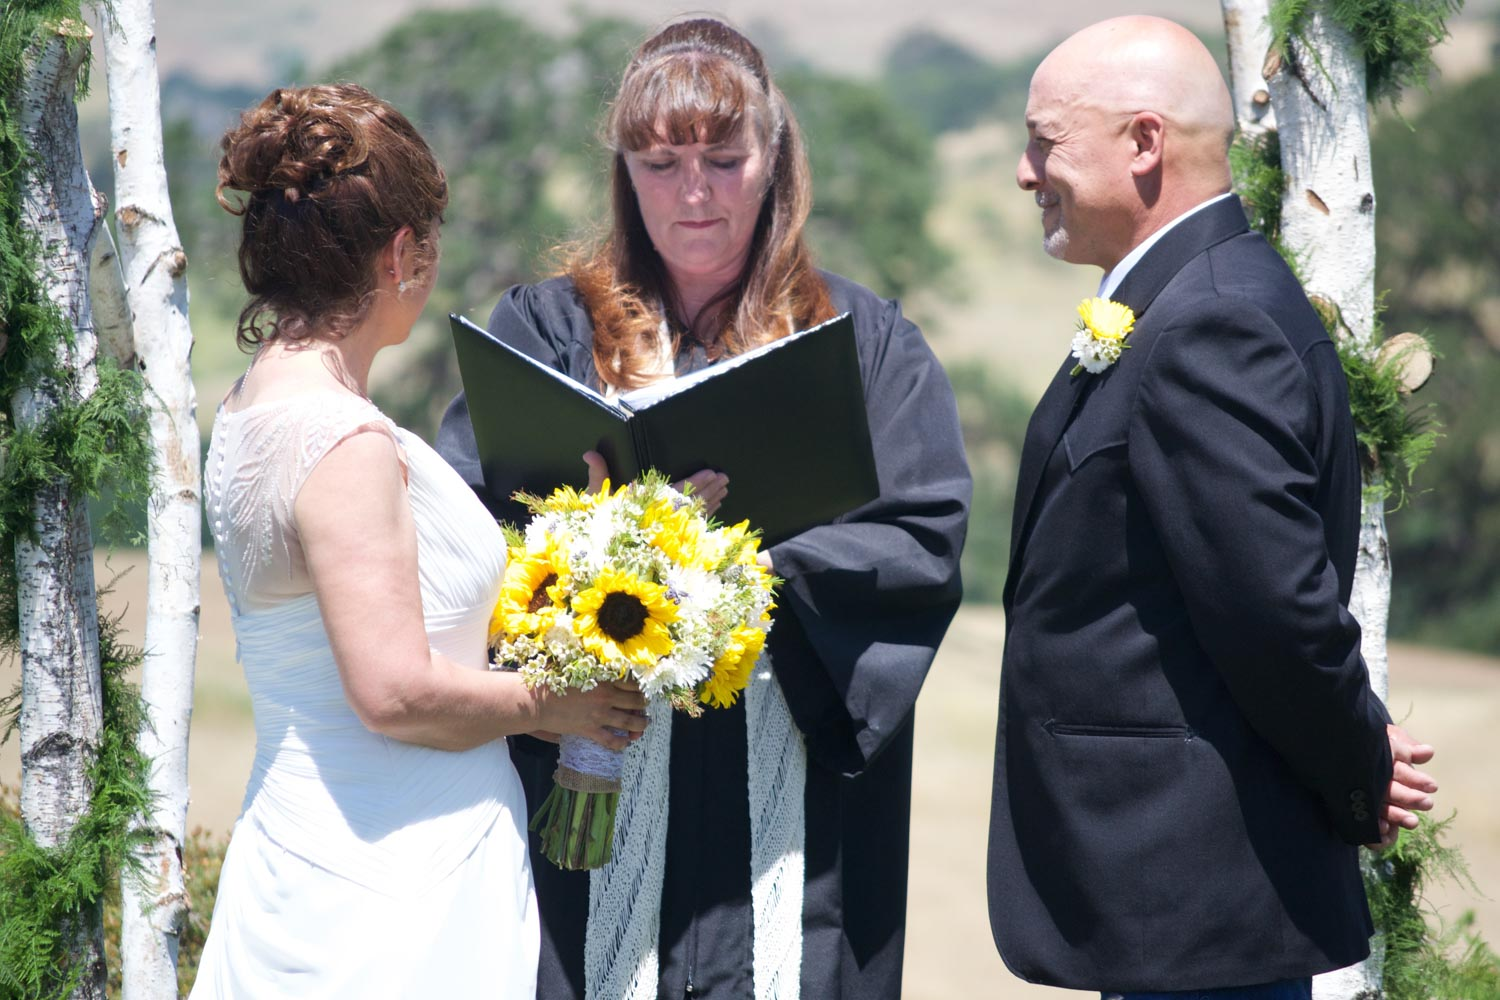 Bride and groom looking at officiant during wedding ceremony.